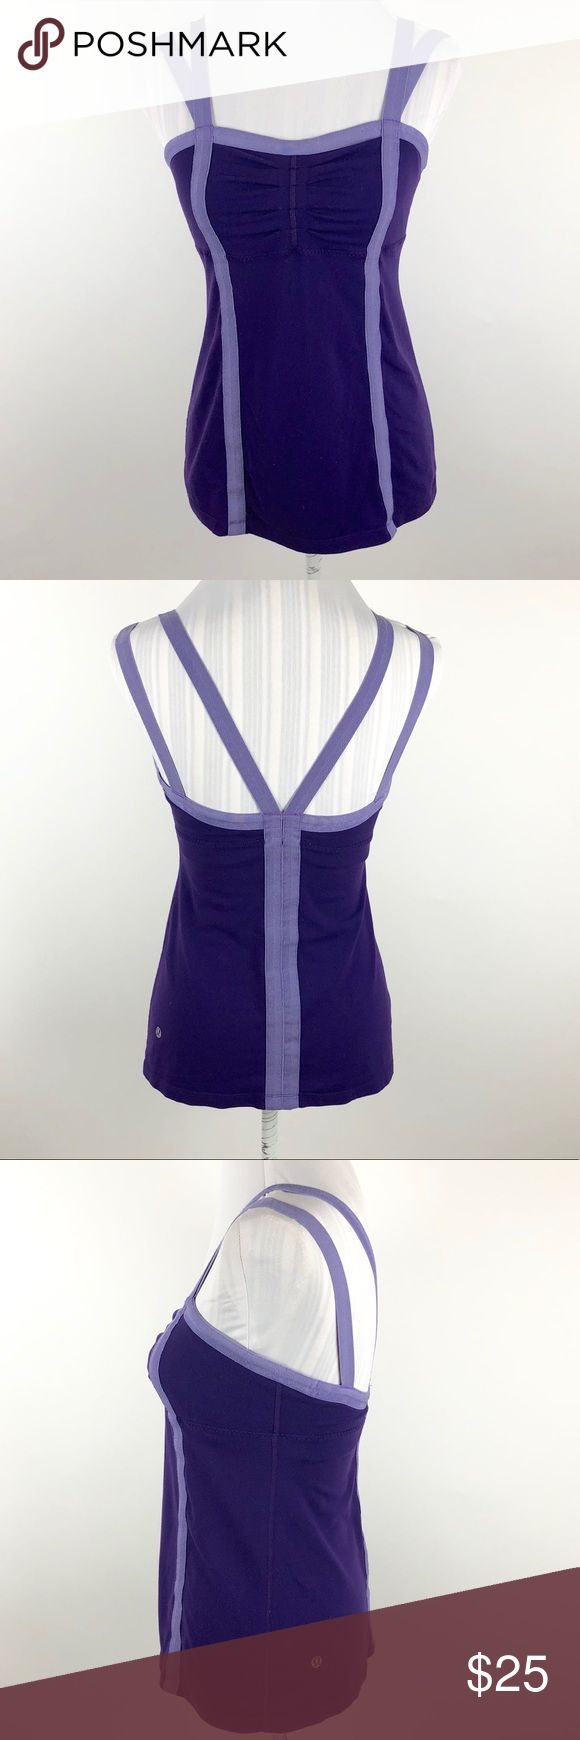 "Lululemon Purple Strappy Tank Top Womens Size 8 Lululemon Purple Strappy Tank Women's Size 8  Pit to Pit: 15""  Length: 18""  Condition: Excellent pre-owned condition. lululemon athletica Tops Tank Tops"